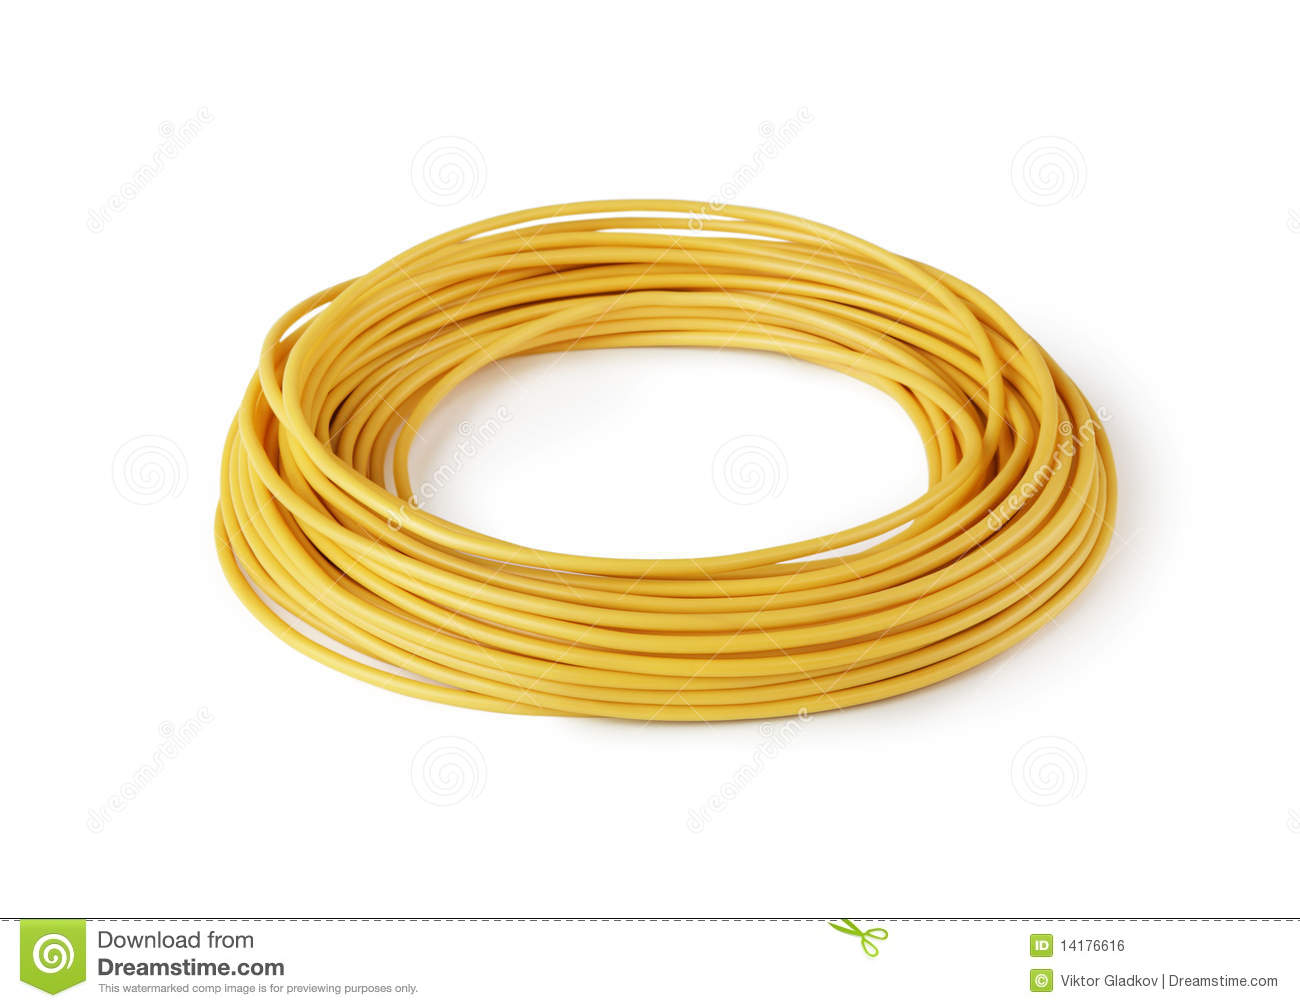 hank-yellow-wire-isolated-14176616 Wiring Yellow Wire on